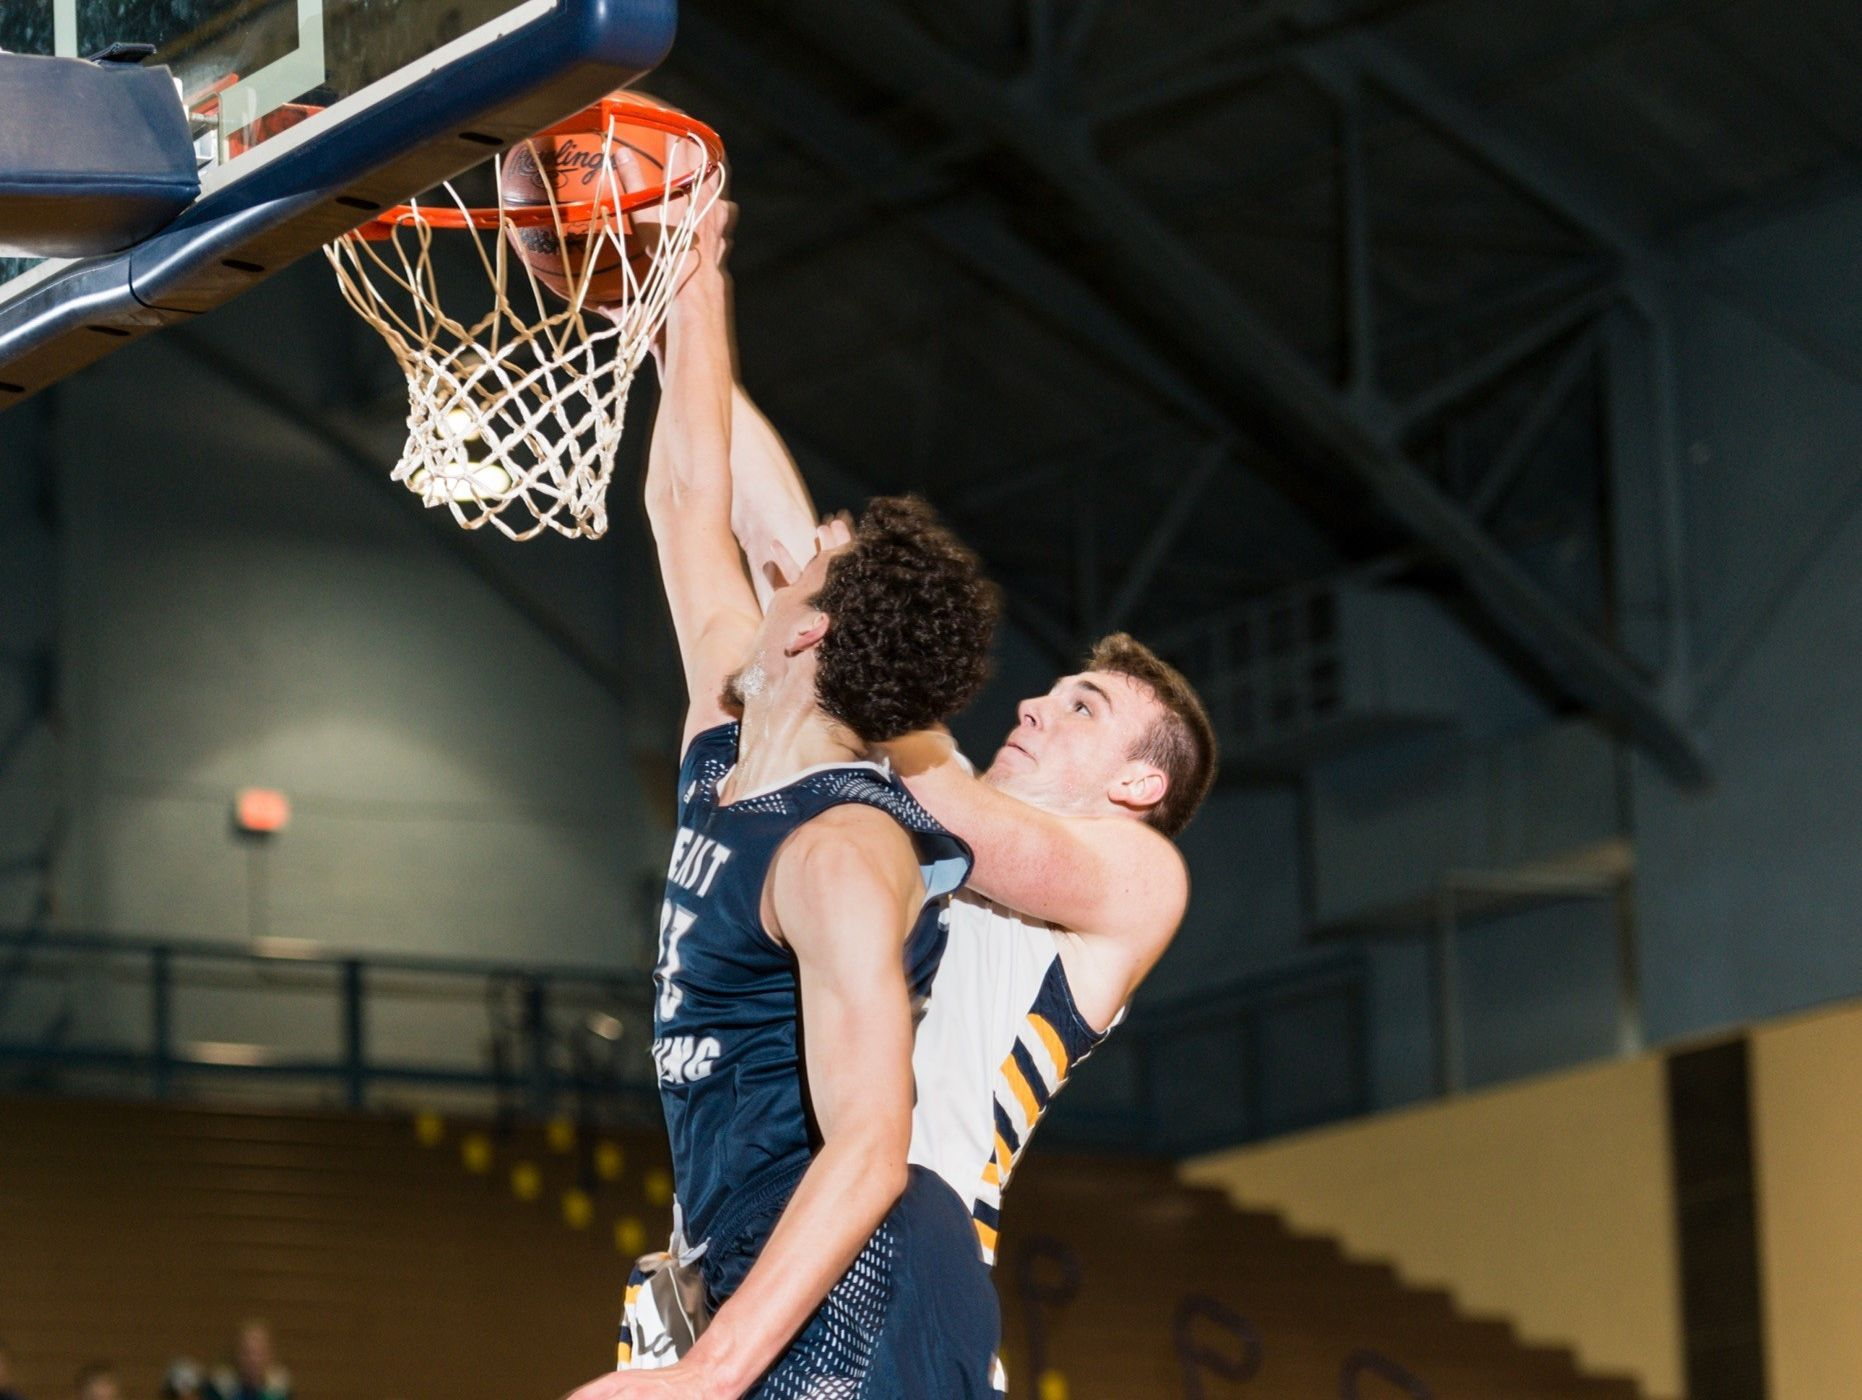 Brandon Johns ,foreground, of East Lansing blocks a lay up attempt by Nick Crocker of Grand Ledge during their district quarterfinal game Monday March 6, 2017 at Don Johnson Fieldhouse in Lansing.